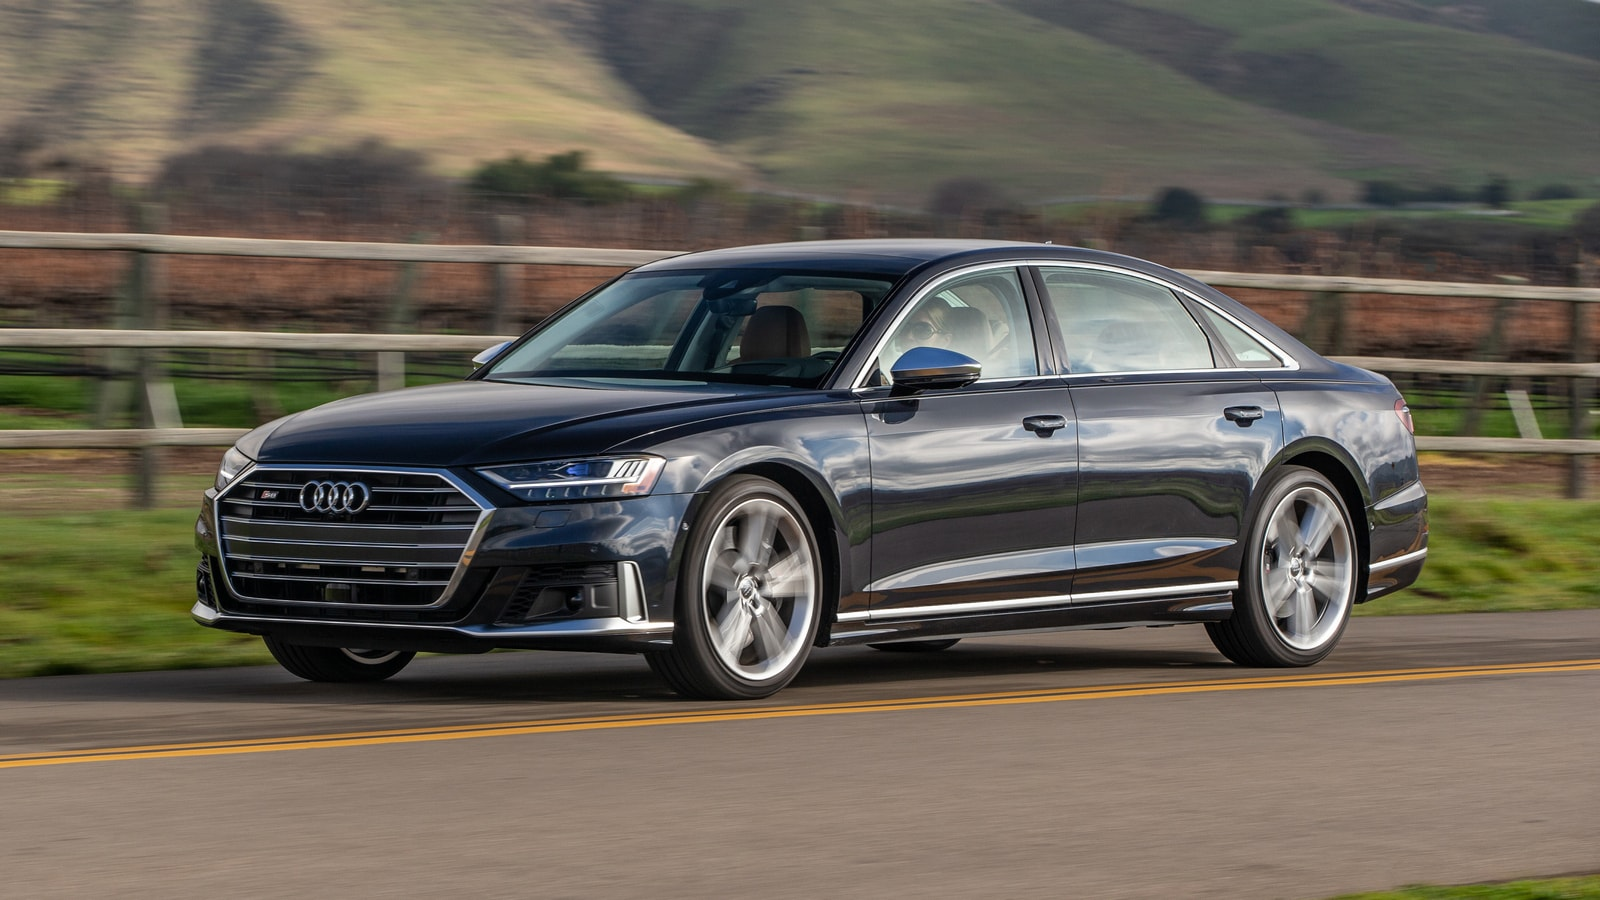 2021 audi a8 first review  kelley blue book